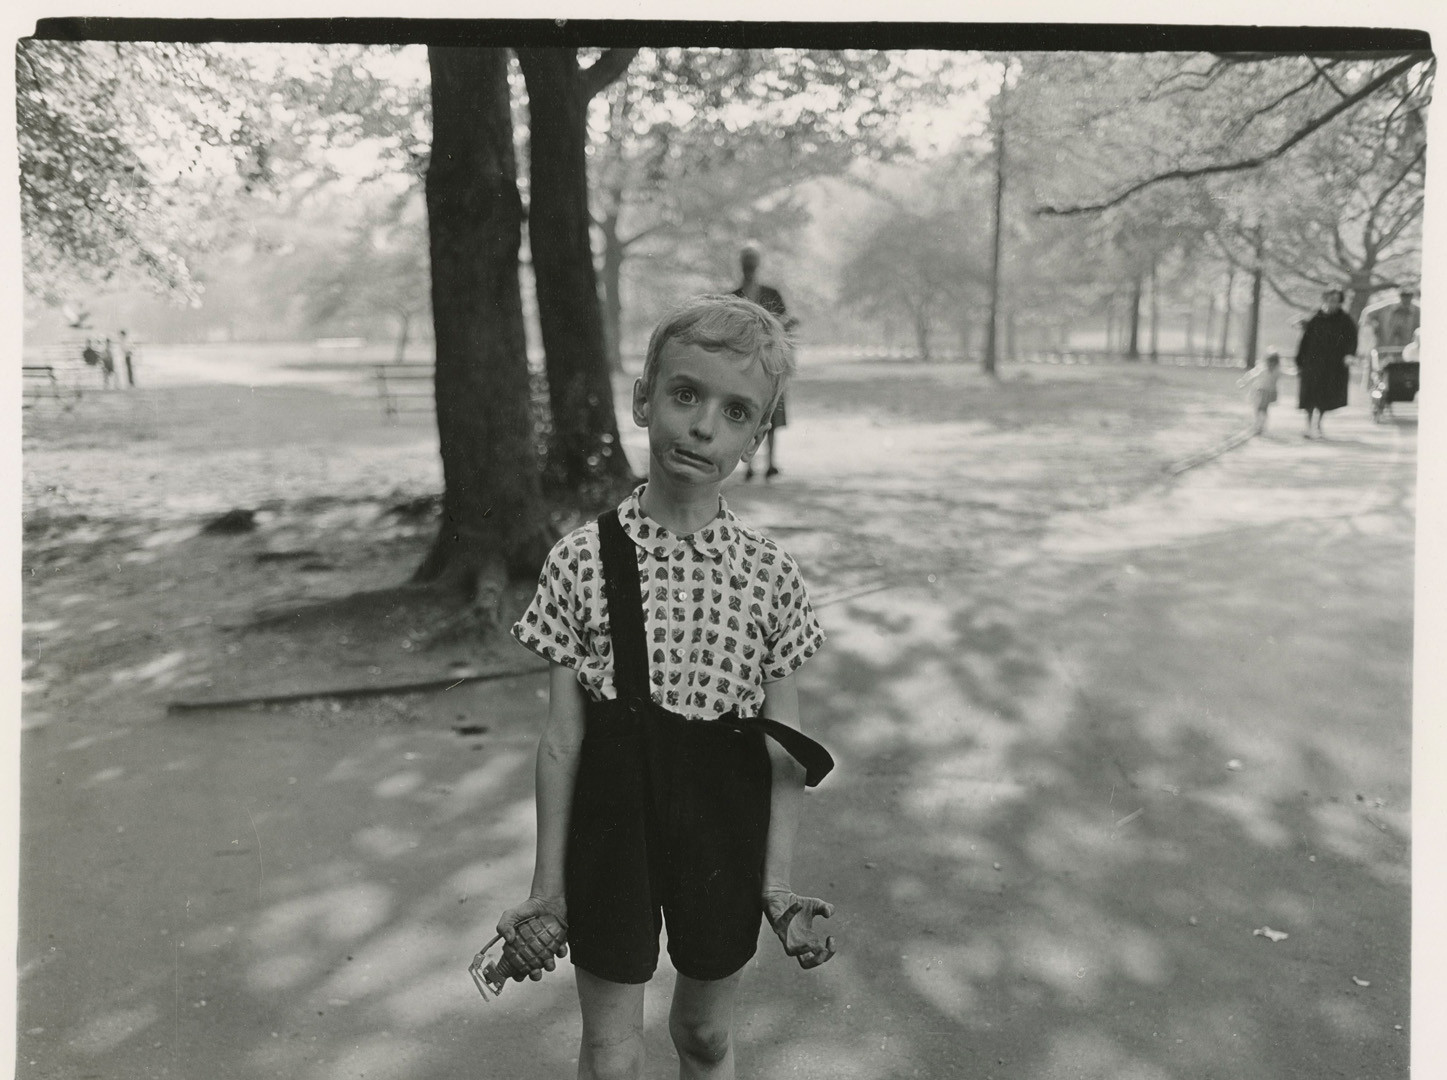 Diane Arbus, Child with a toy hand grenade in Central Park, N.Y.C., 1962